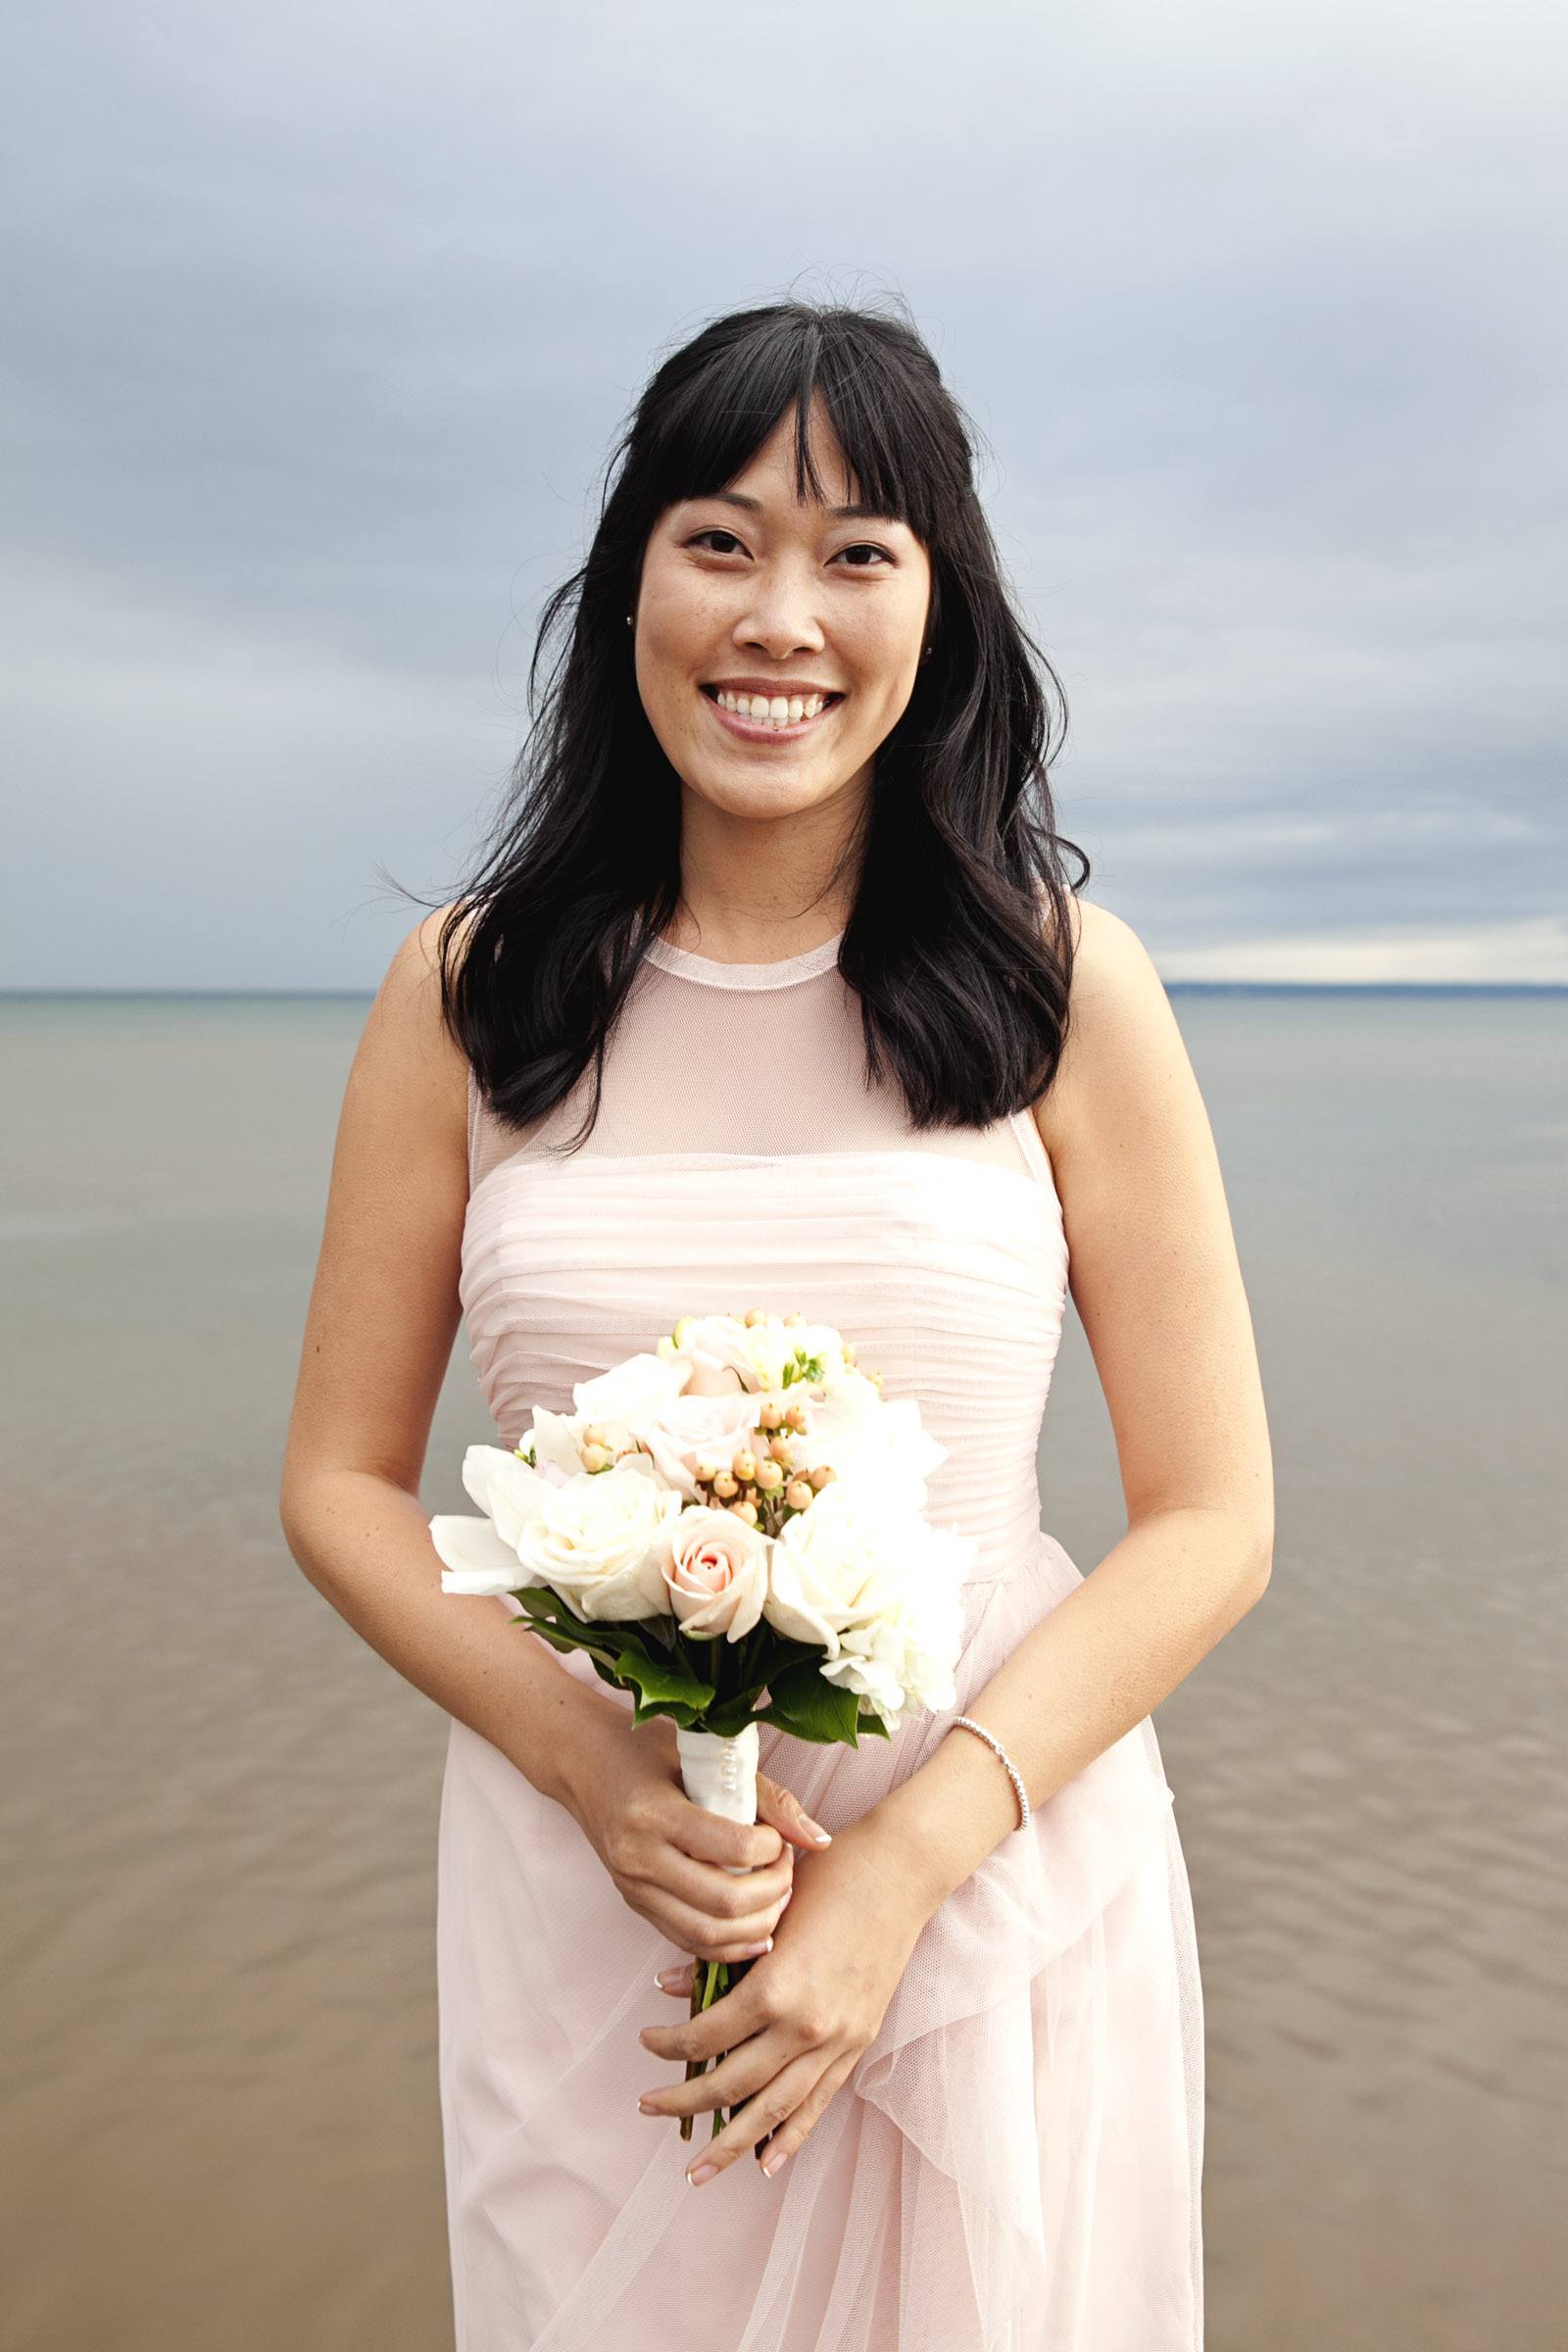 Bridal photos done at Oakville Lakeshore in Ontario